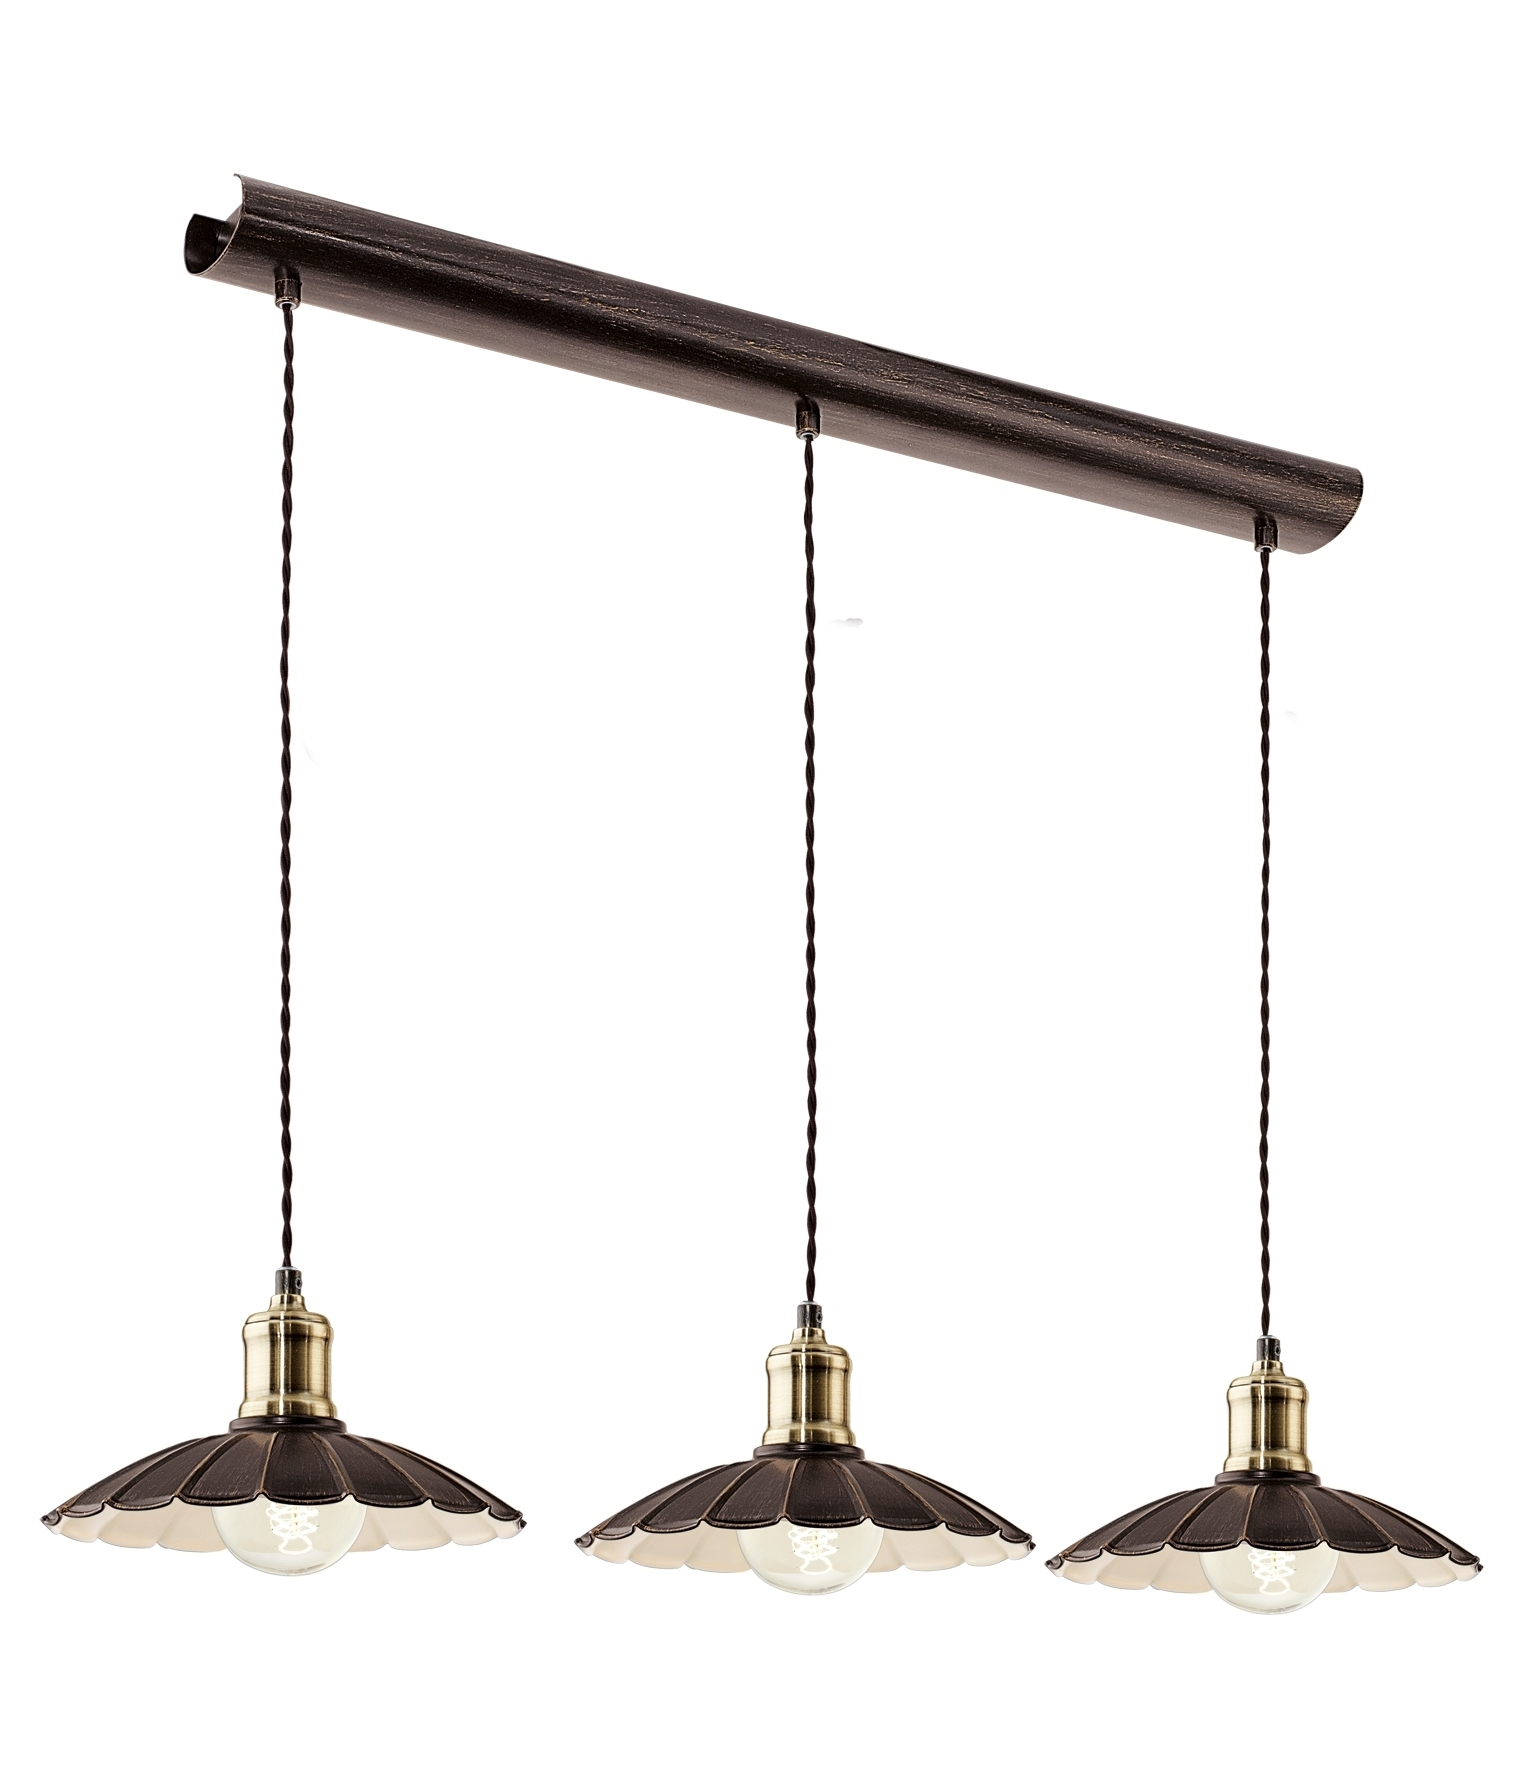 Pendant Bar Lighting French Style 3 Light Pendants With Scalloped Edges